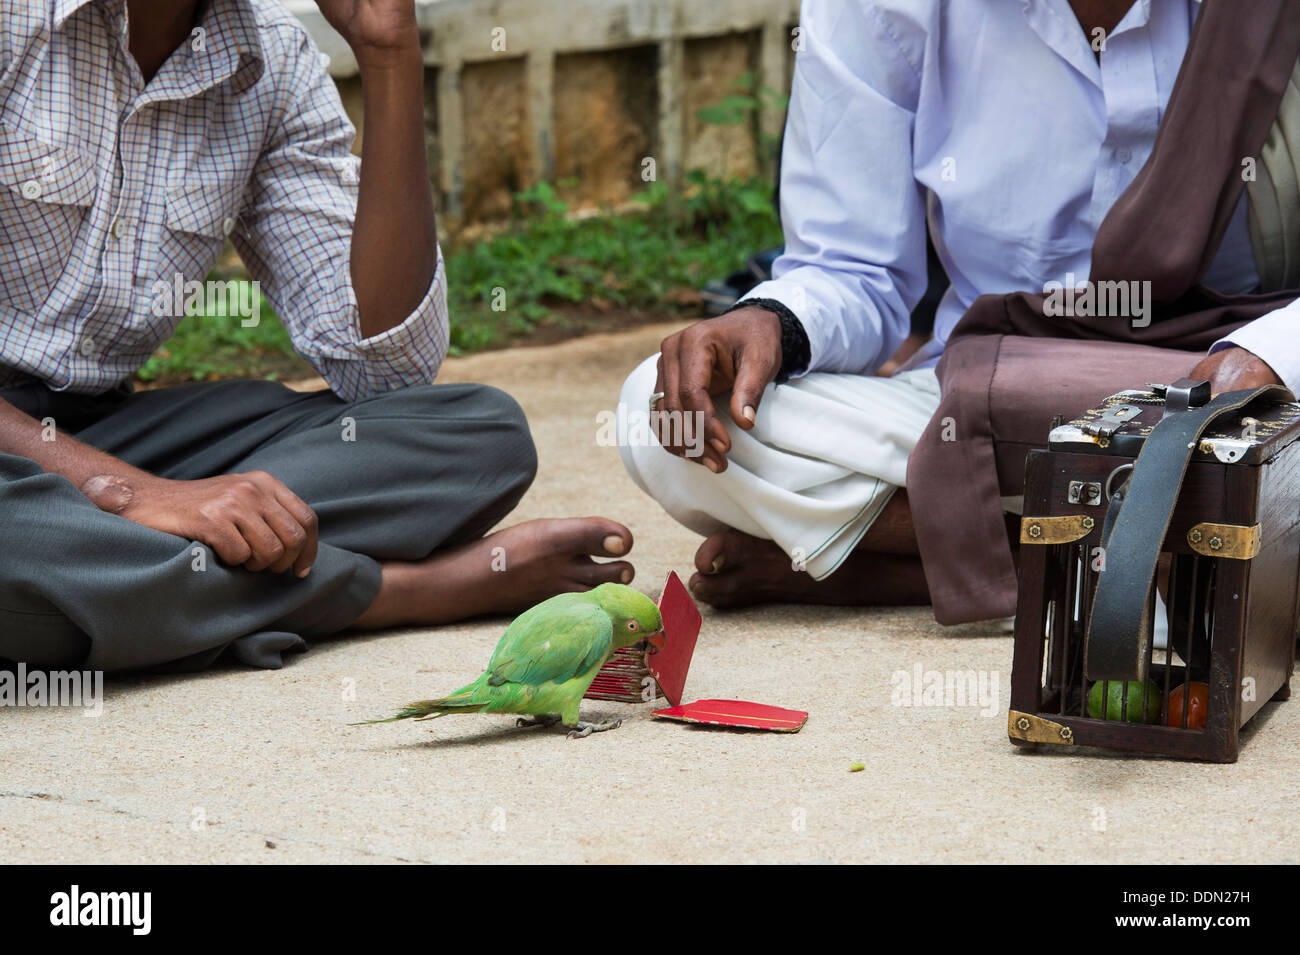 Parrot astrology. Indian street Astrologer / Fortune Teller with a parrot. Andhra Pradesh, India - Stock Image